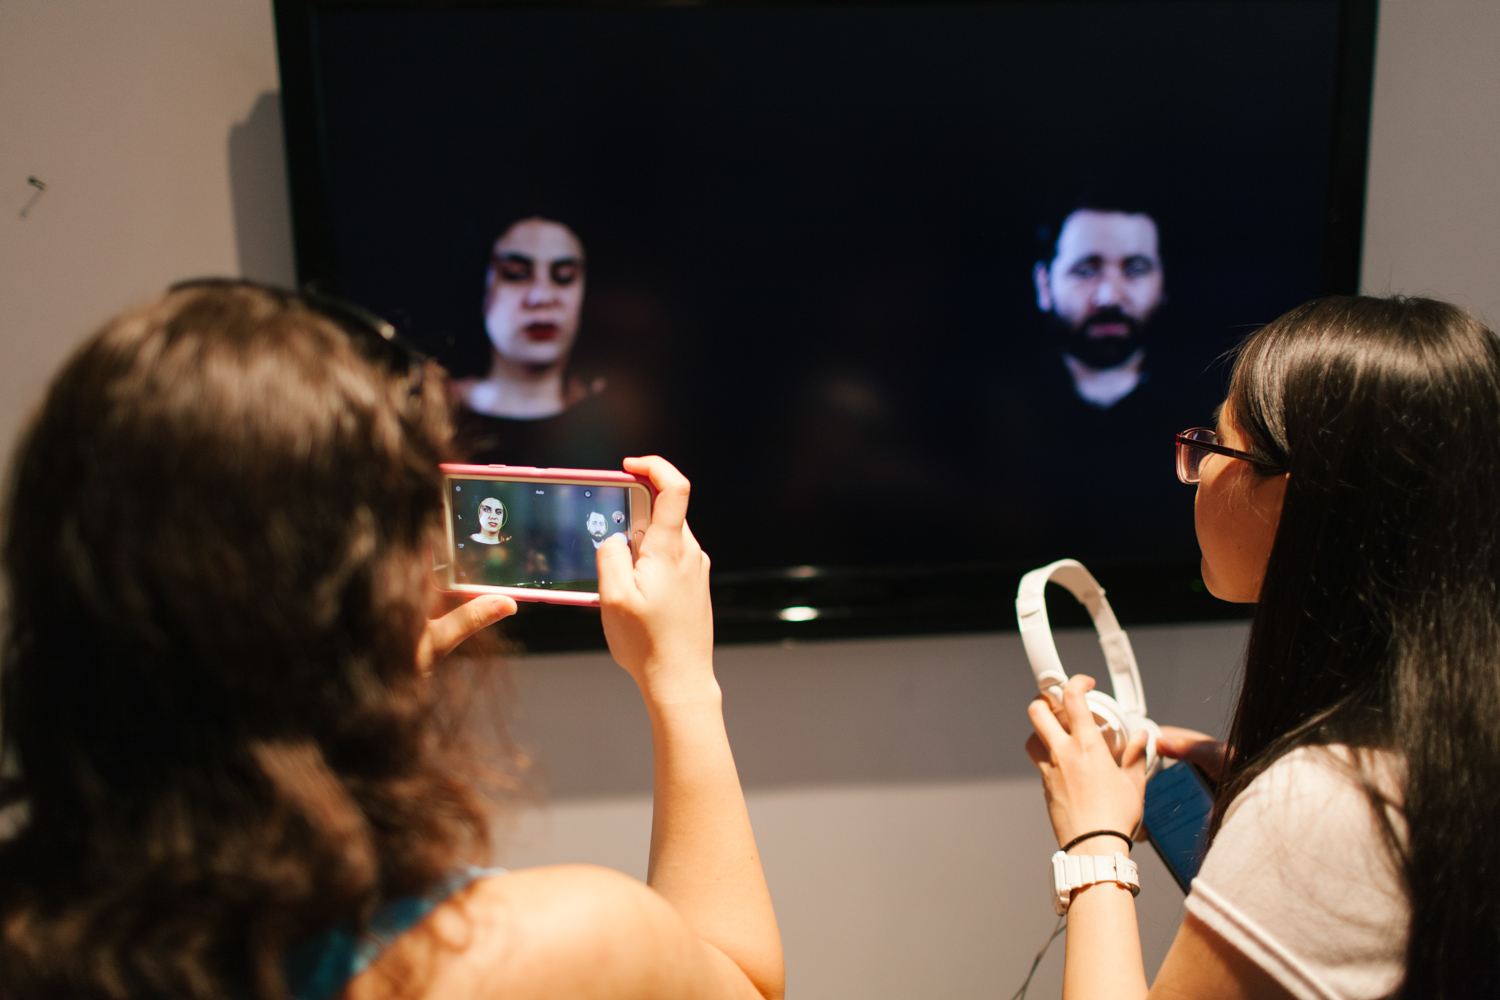 Person taking a photo of two people being displayed on a tv monitor.